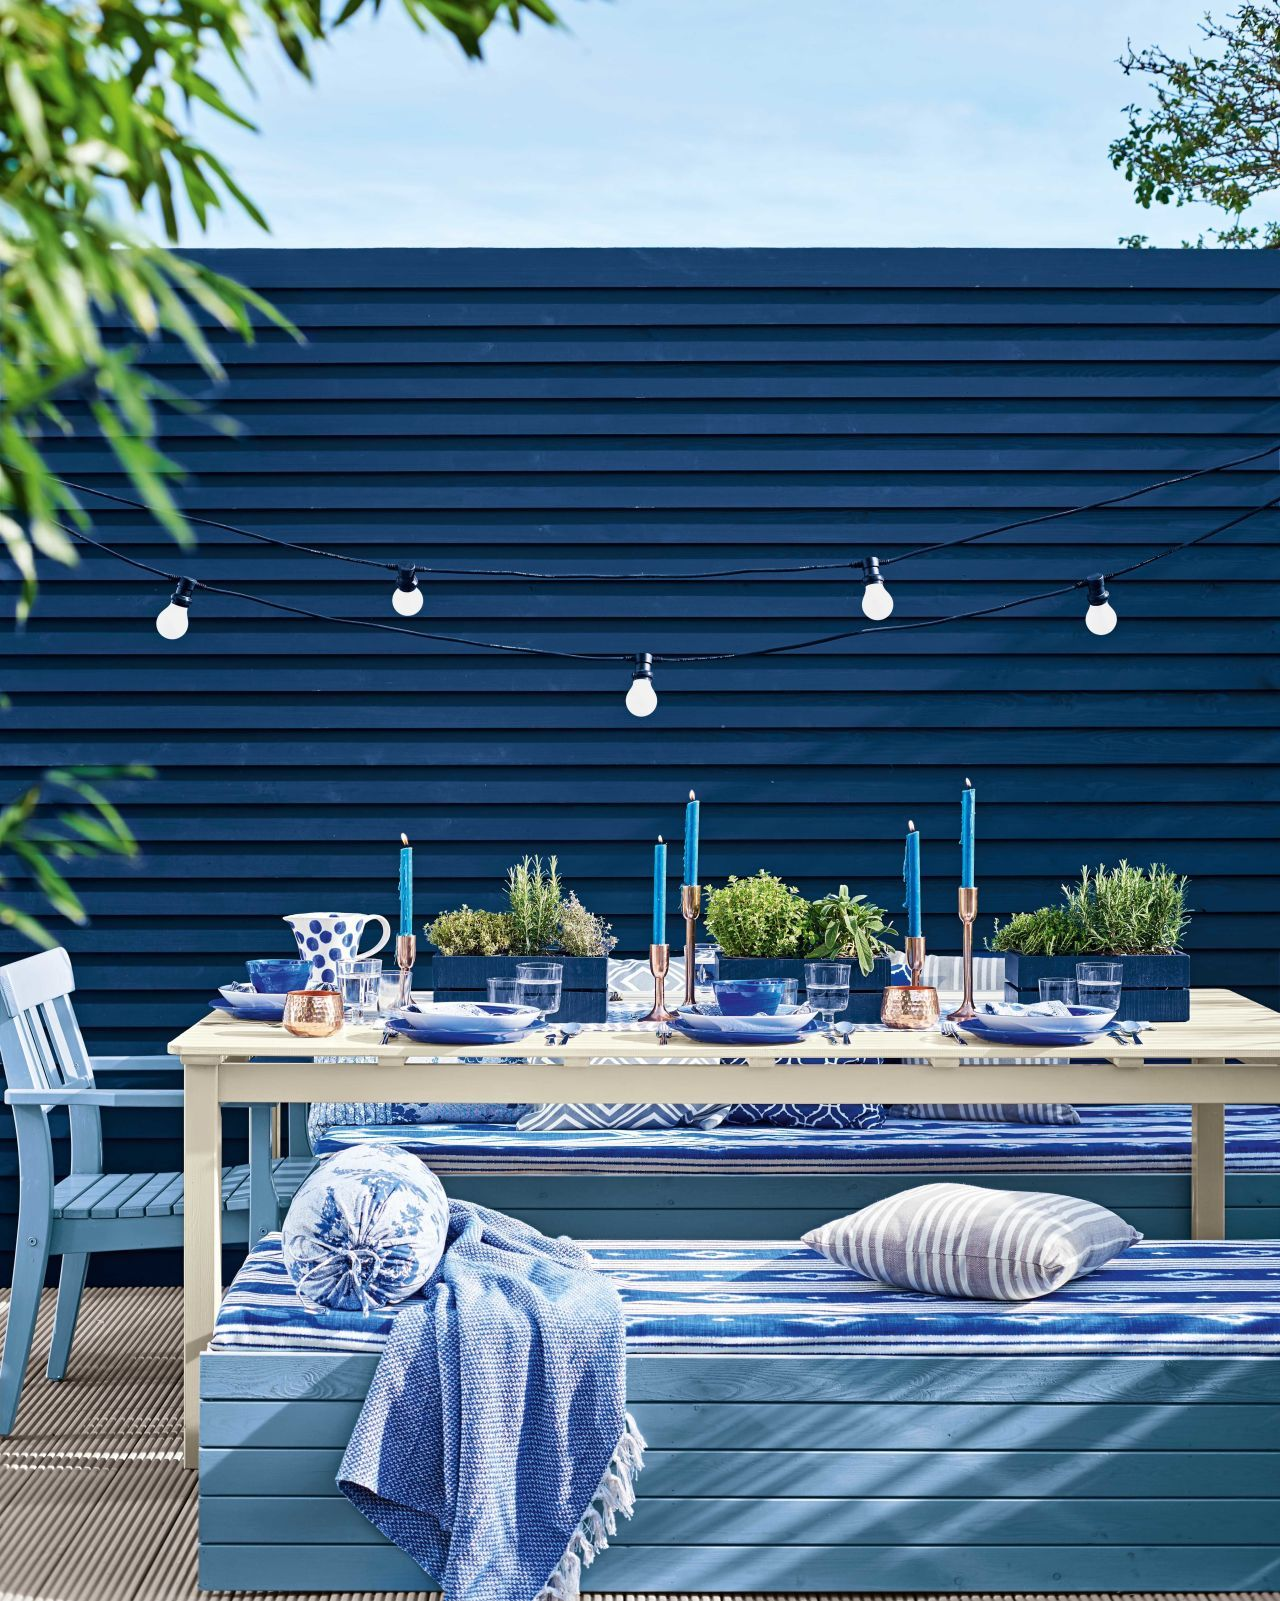 Garden dining alfresco style is part of garden Decking Inspiration - Expert advice on using deep saturated blues to update your garden